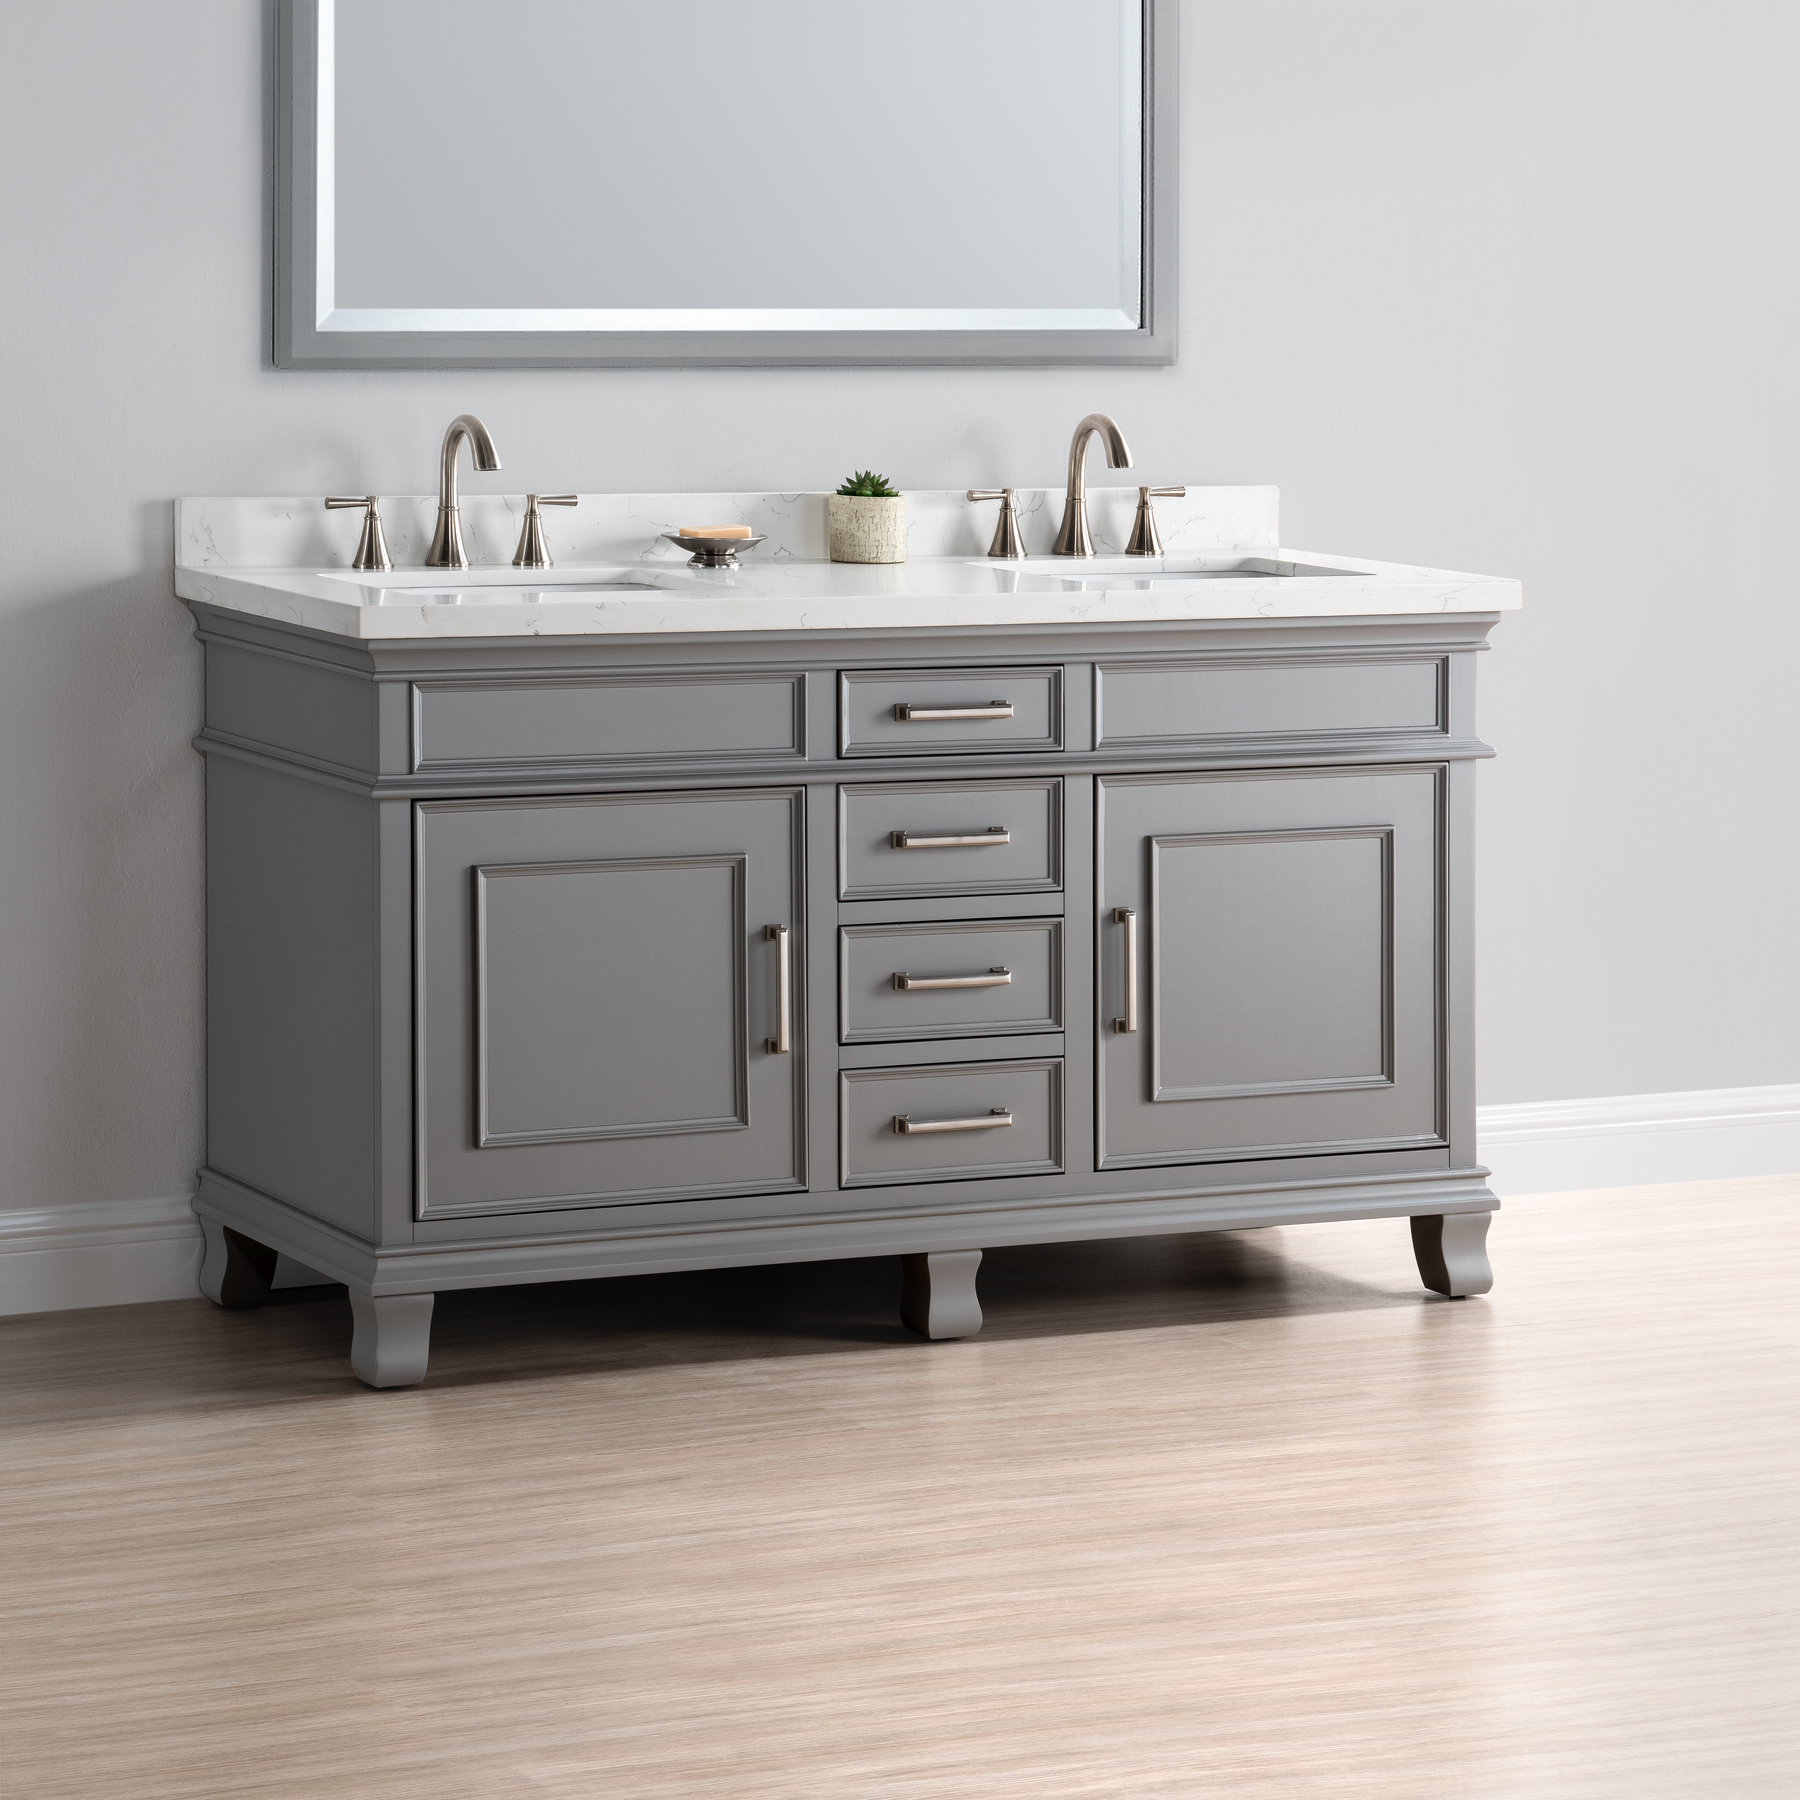 double vanity sink 60 inches.  60 Double Sink Vanity DSC 5601 Charleston Mission Hills Furniture